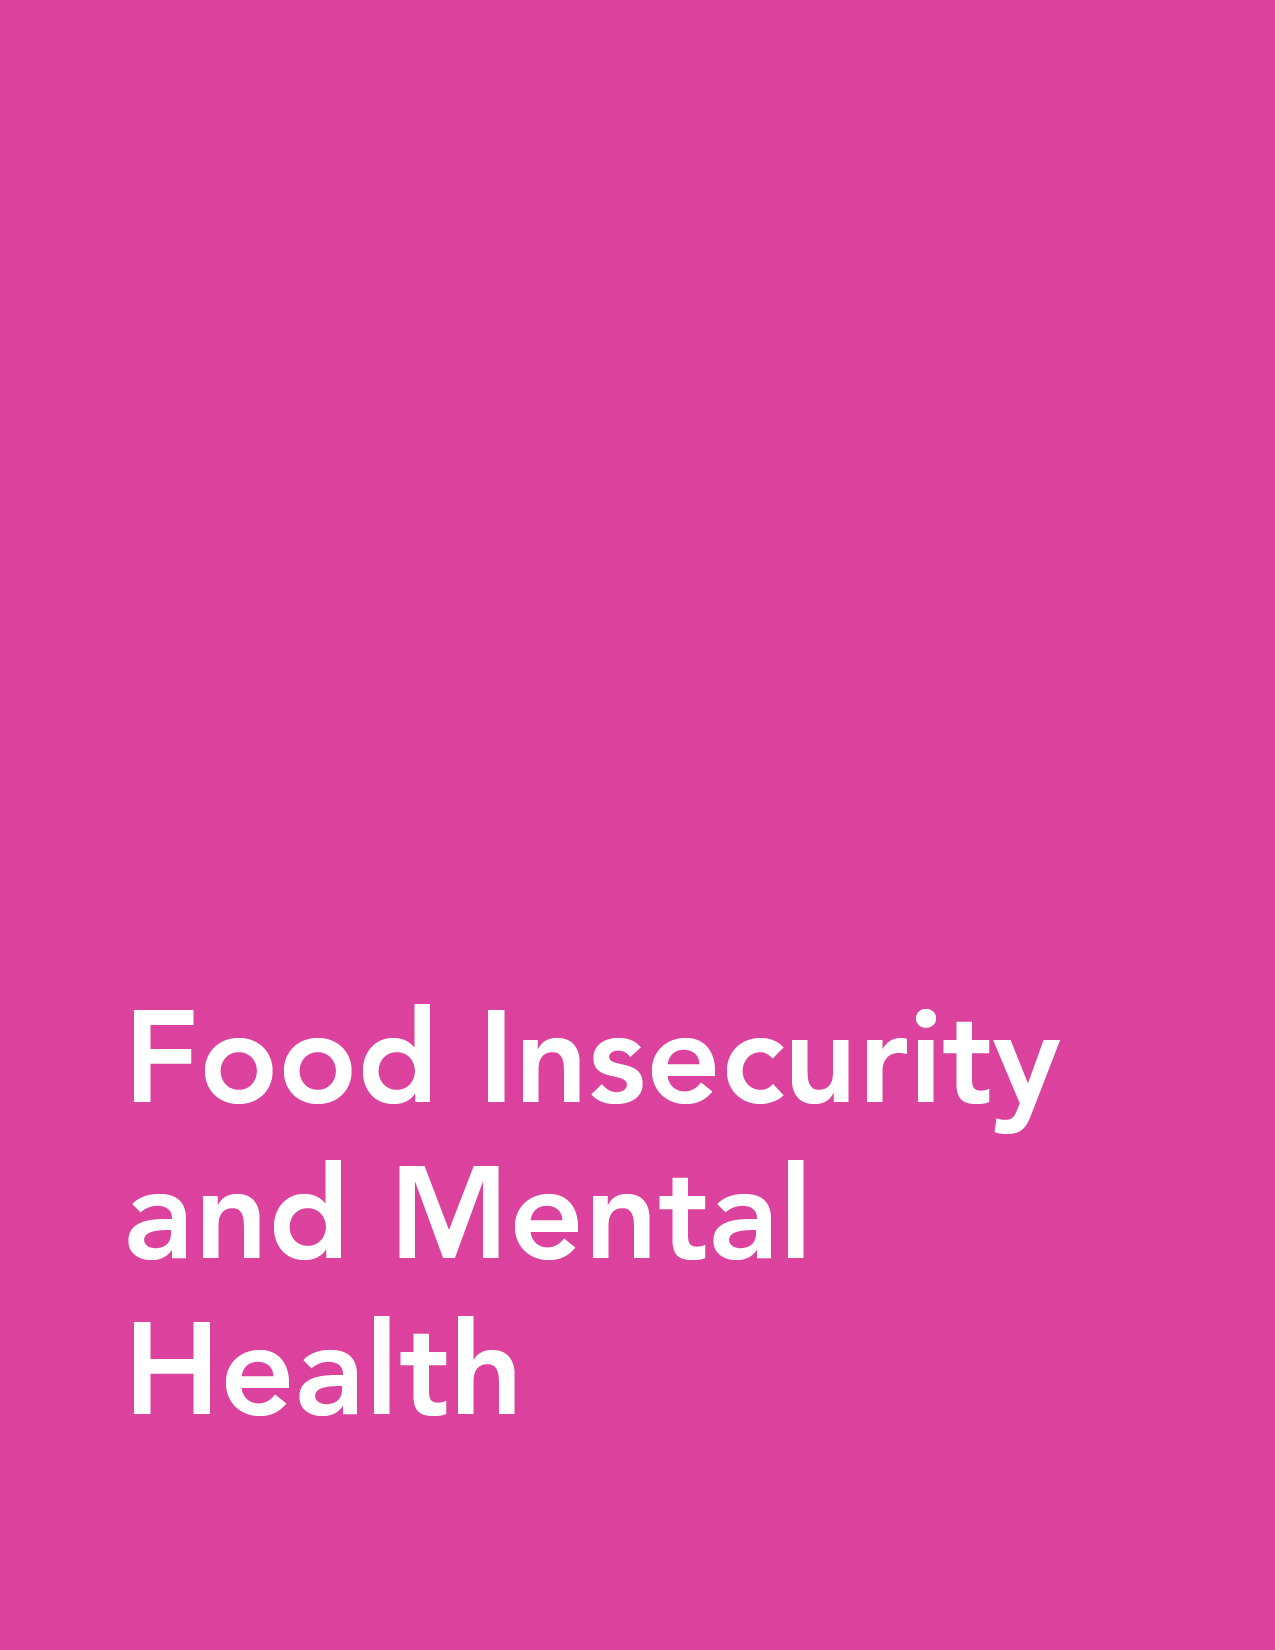 Fact Sheet: Food Insecurity and Mental Health